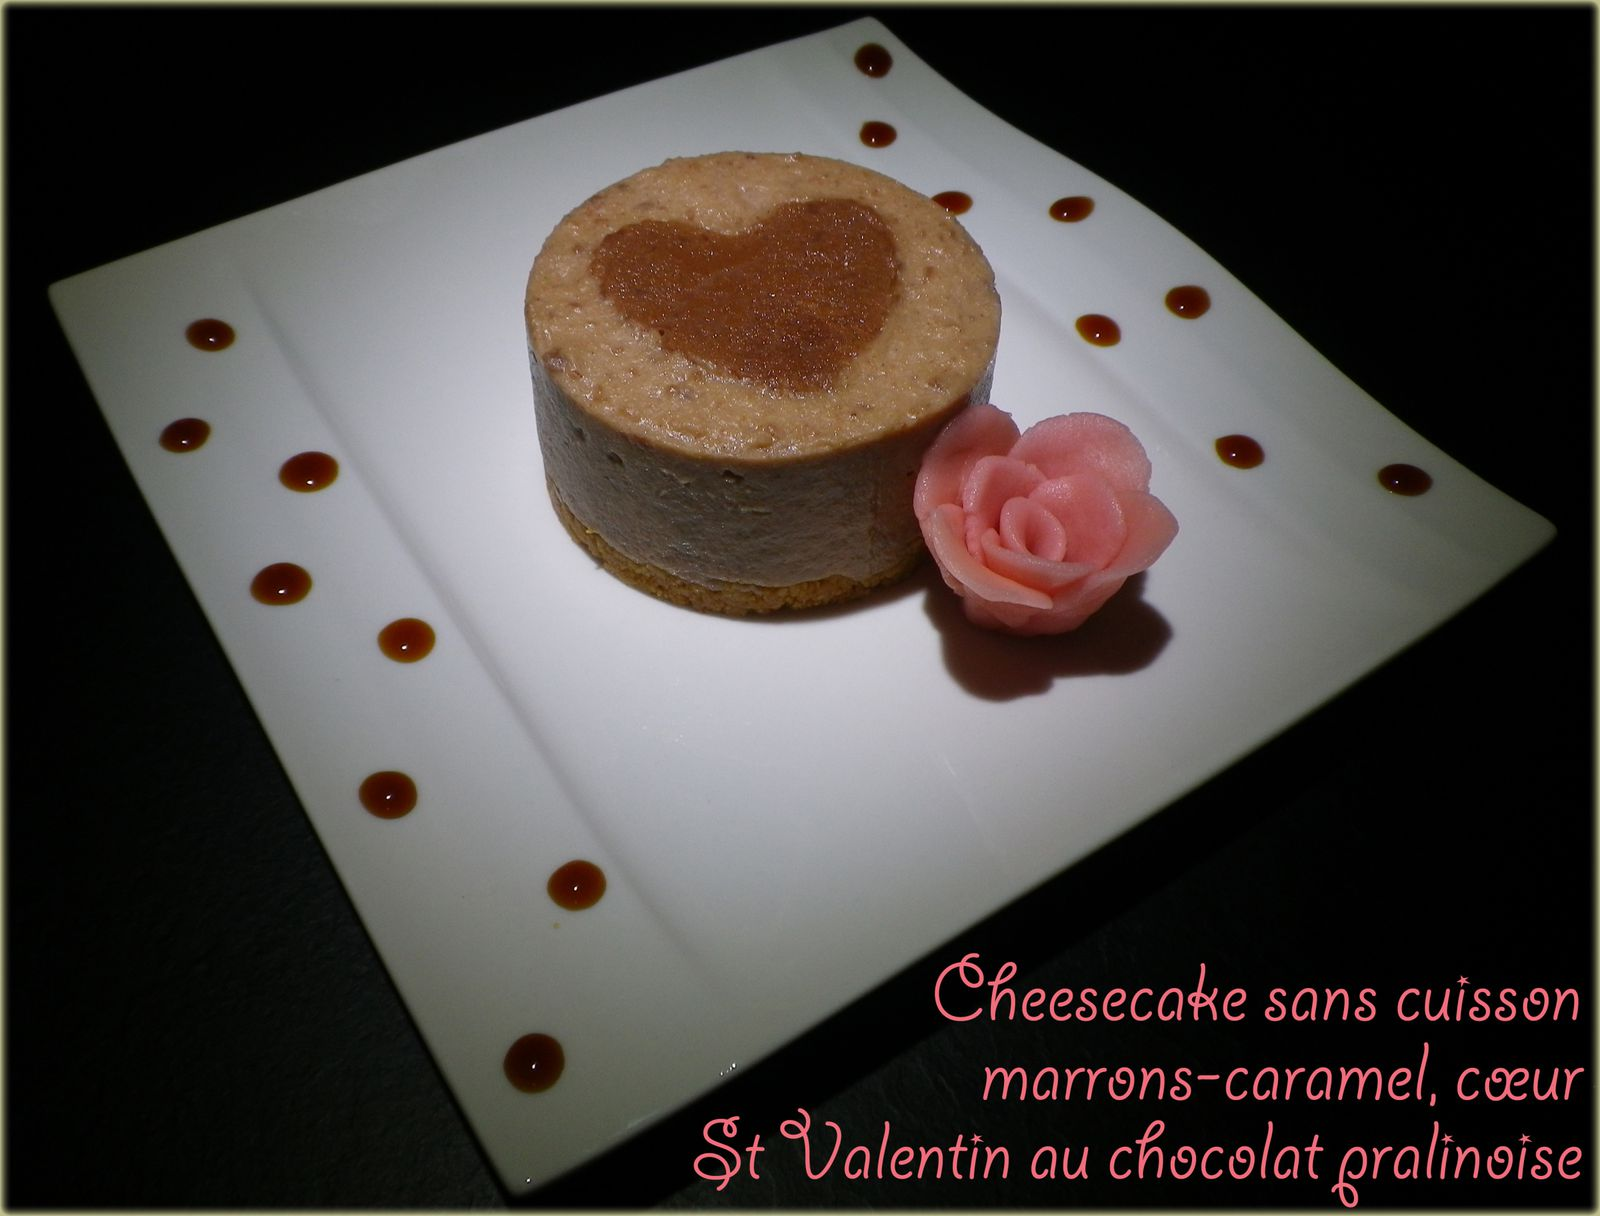 cheesecake sans cuisson marrons caramel c ur st valentin au chocolat. Black Bedroom Furniture Sets. Home Design Ideas